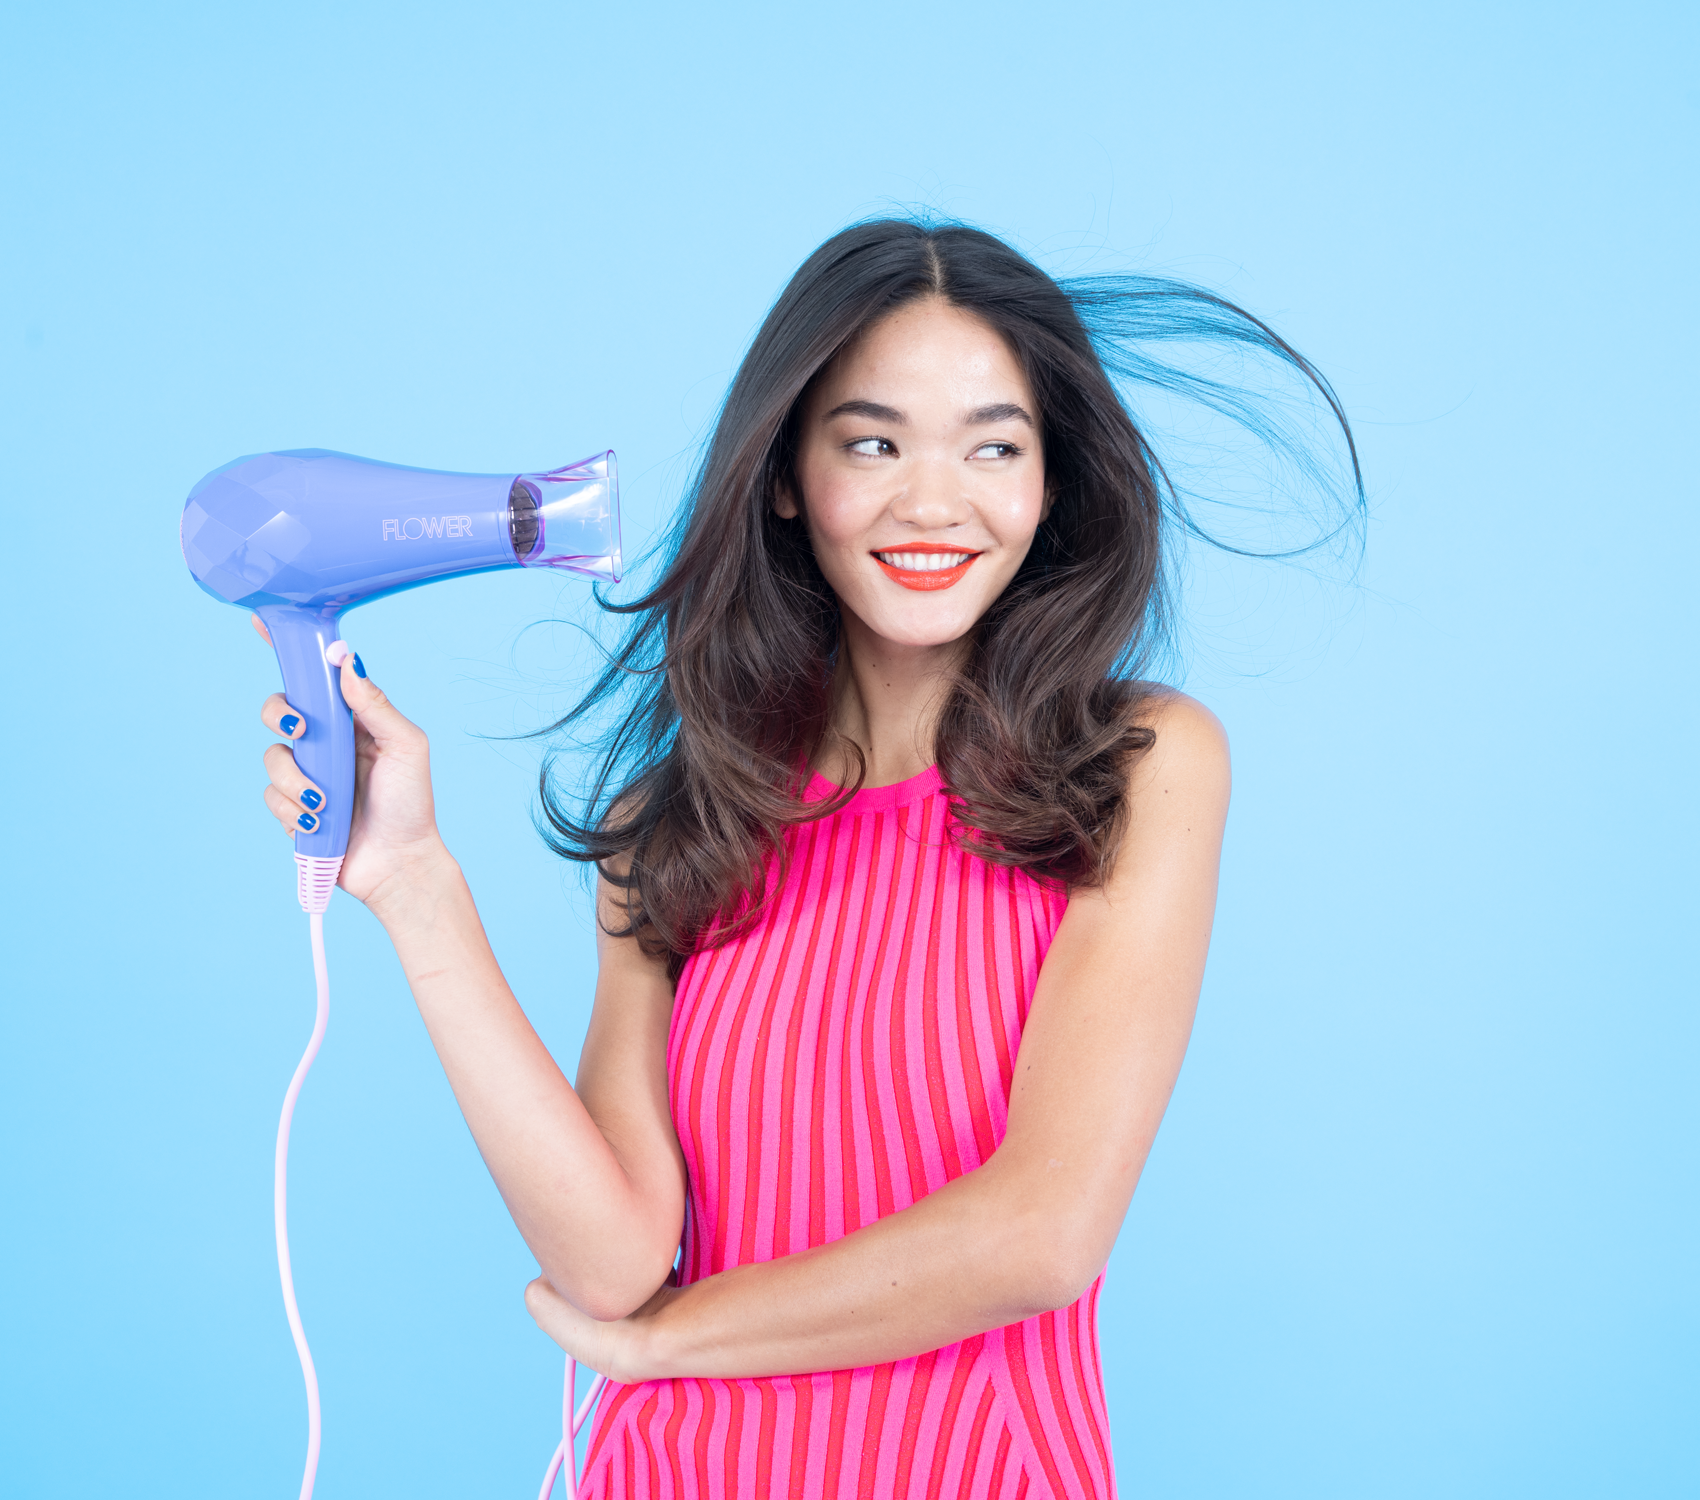 Woman blow drying her hair with Ionic Pro Dryer